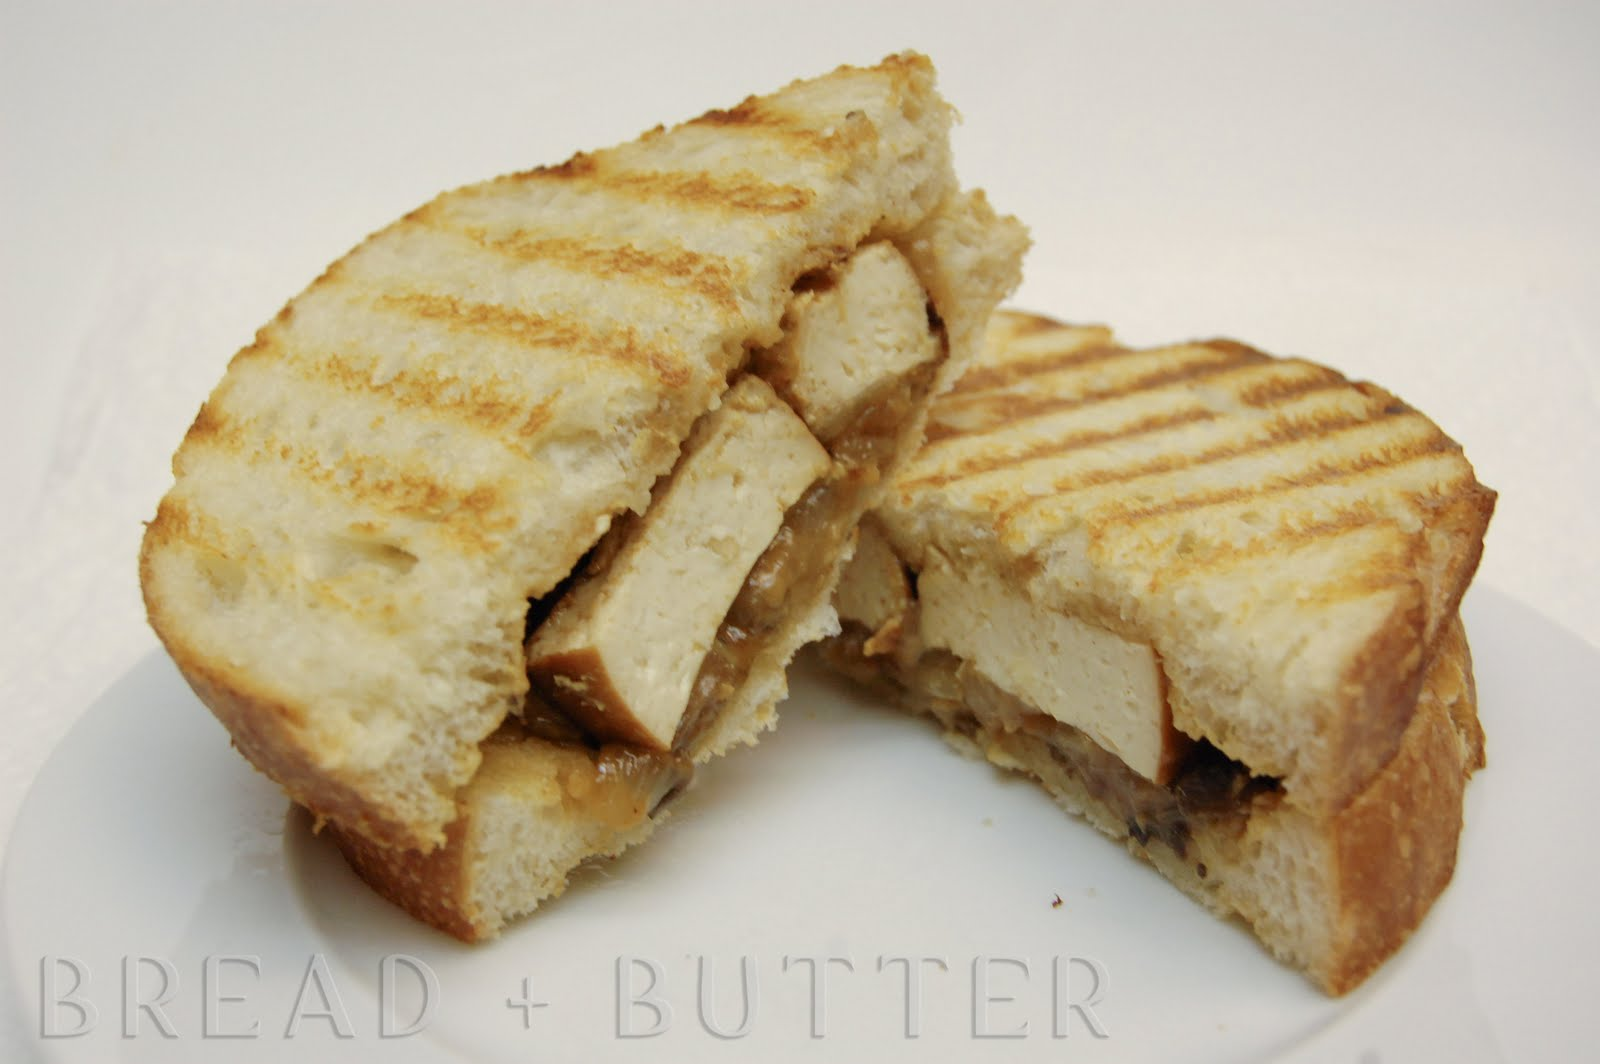 Bread + Butter: Marinated Broiled Tofu Sandwich